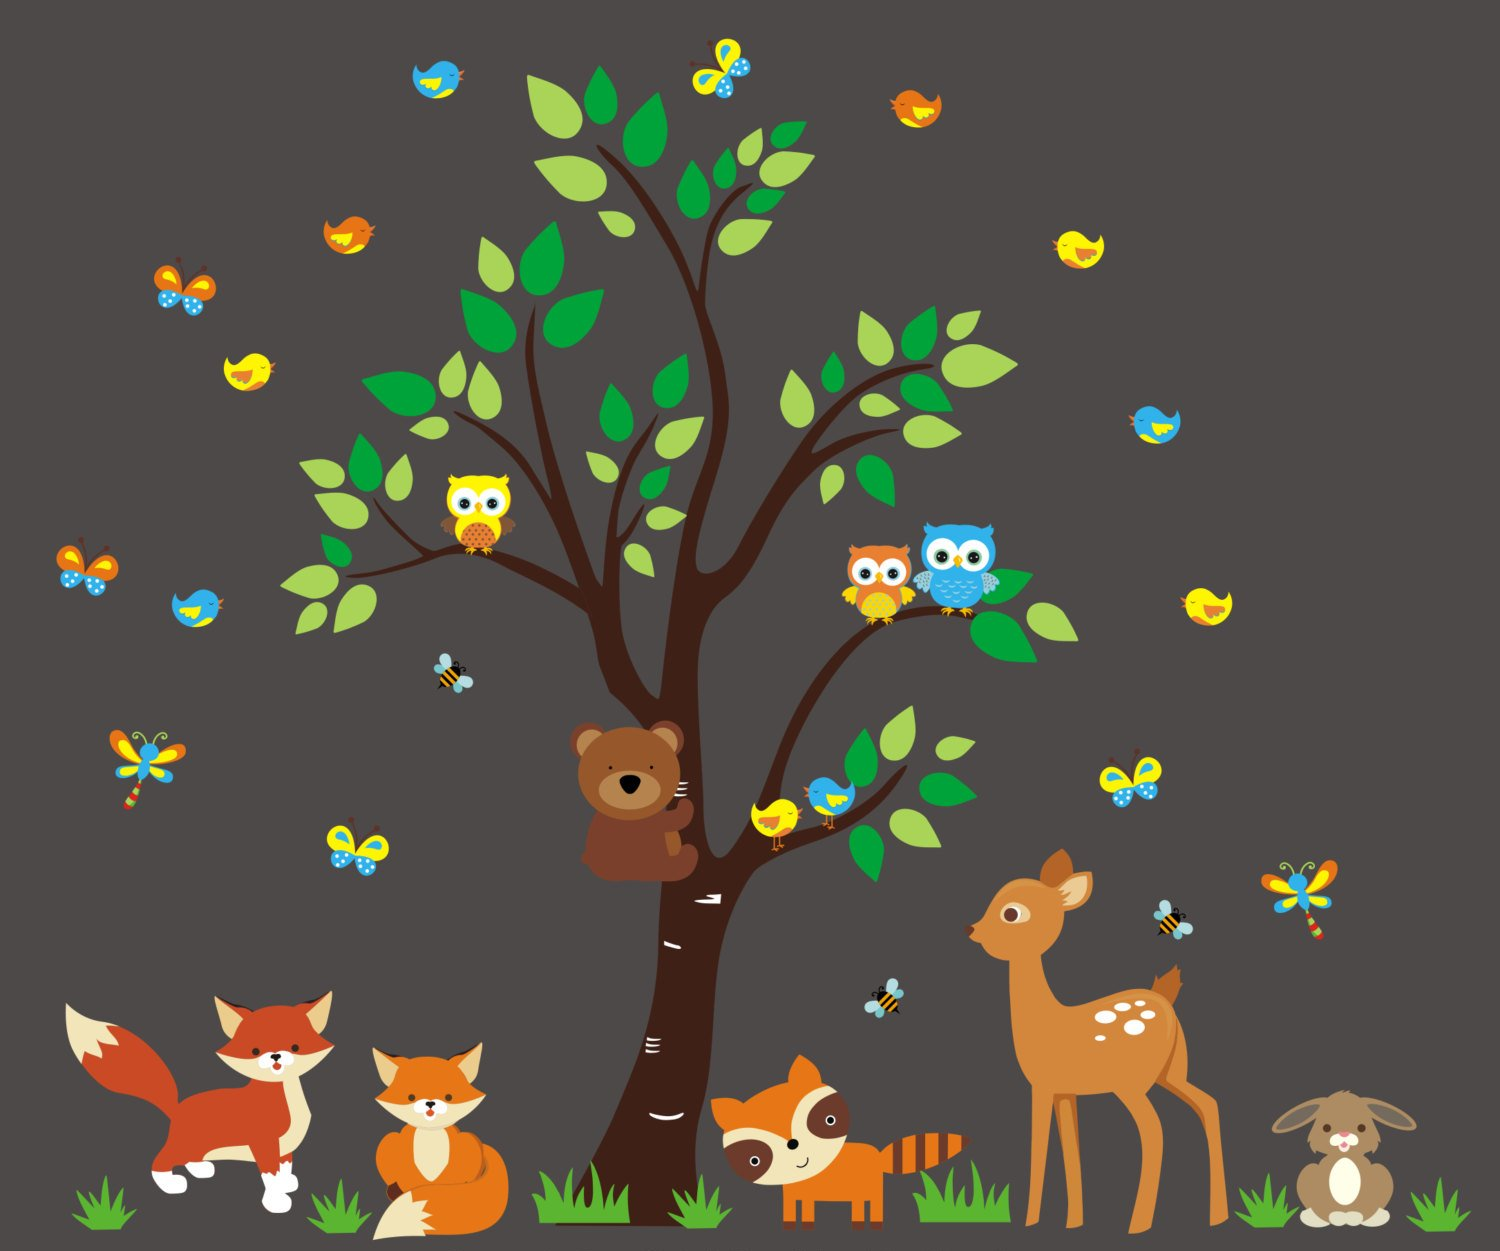 Forest Wall Decals for Nursery - Woodland Animal Stickers - Nature Wall Decals